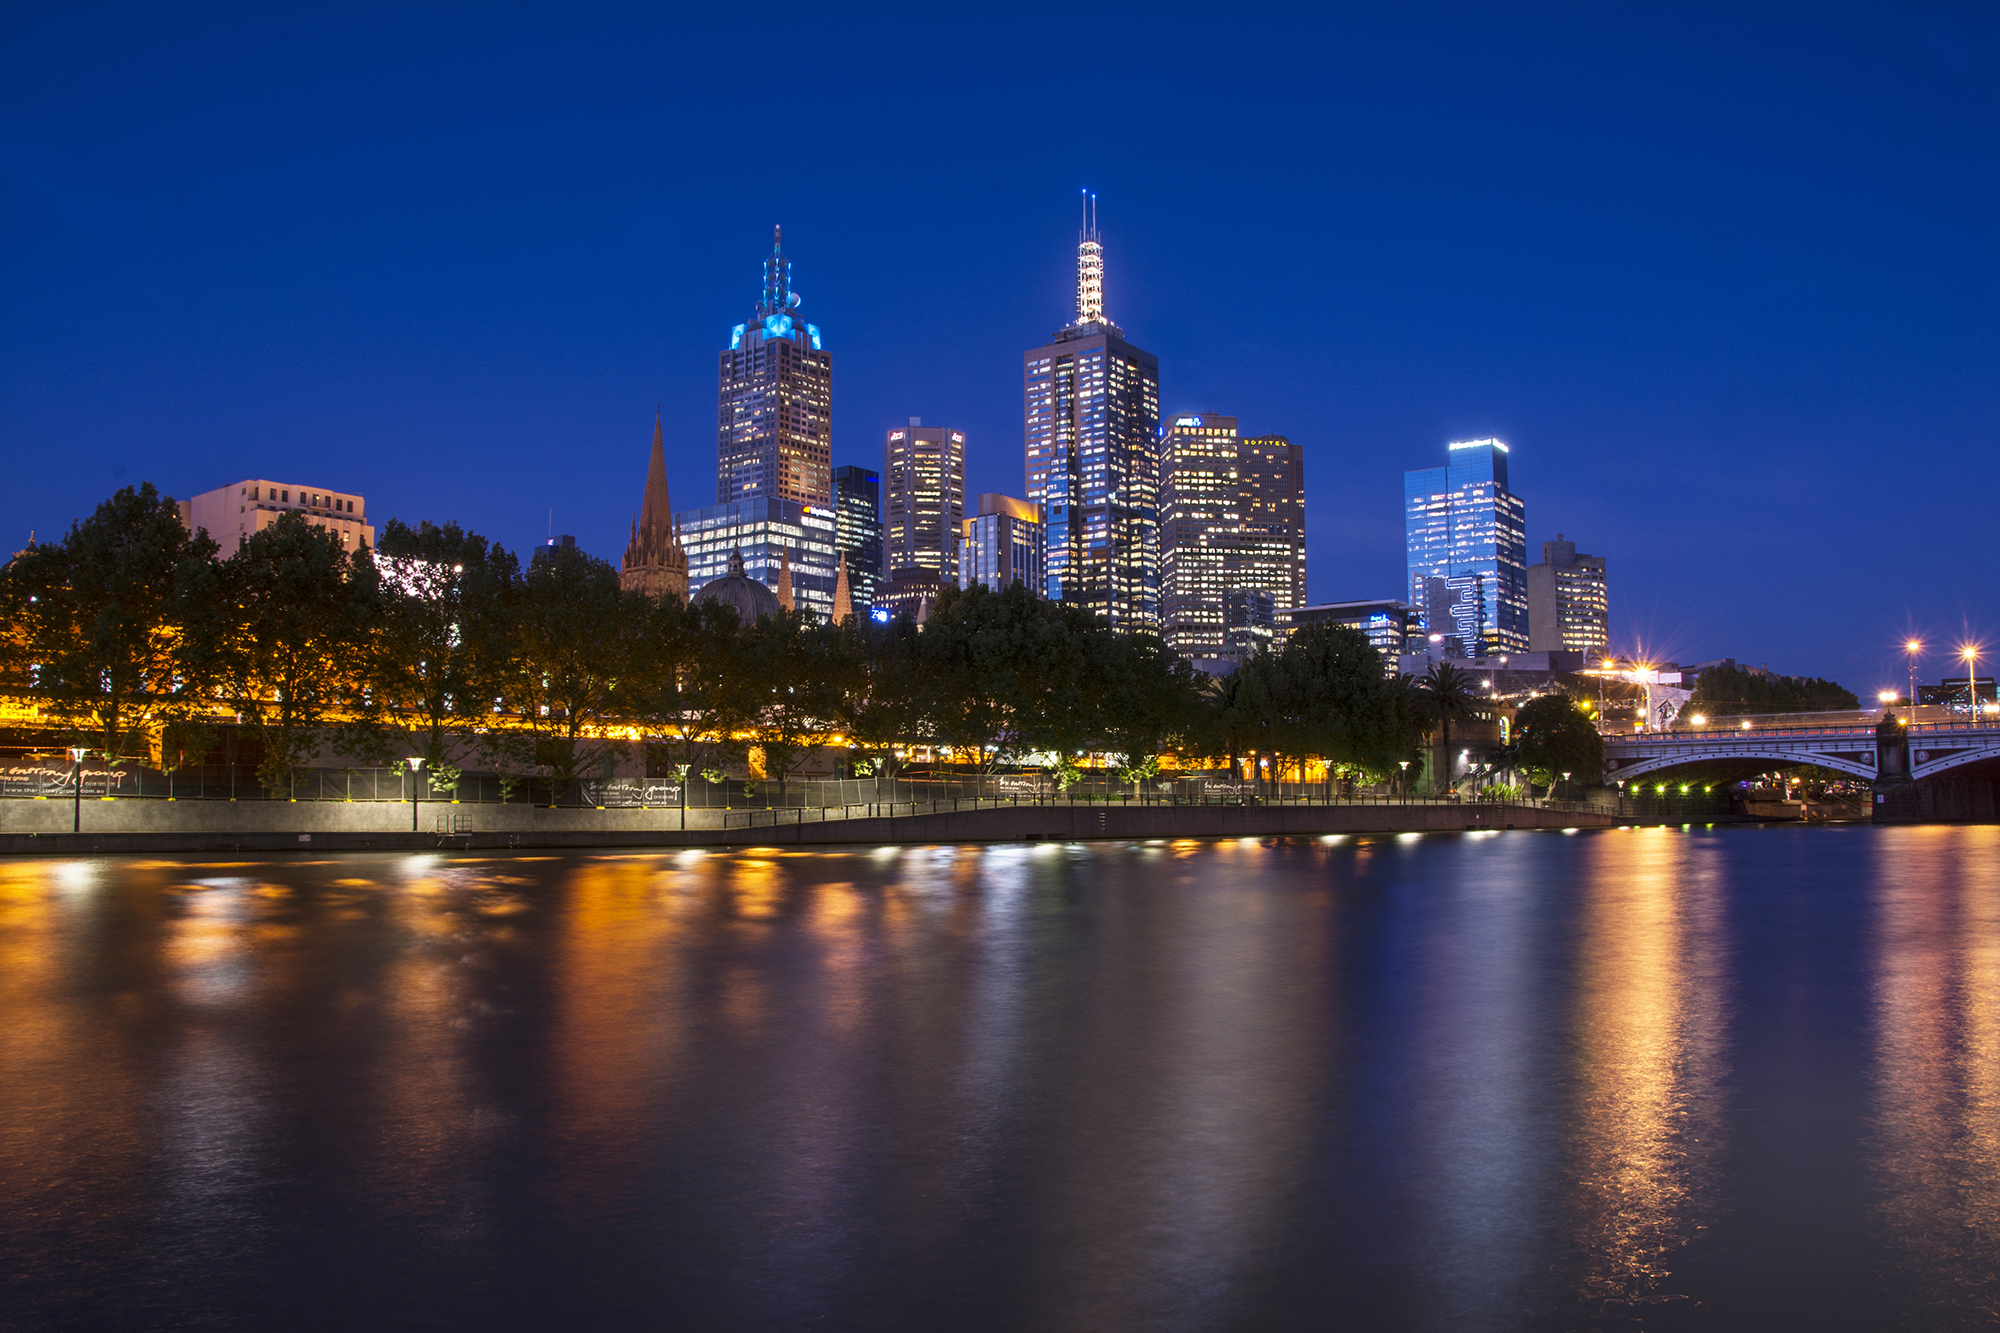 Melbourne's Night Photography Workshop - 2 Hours